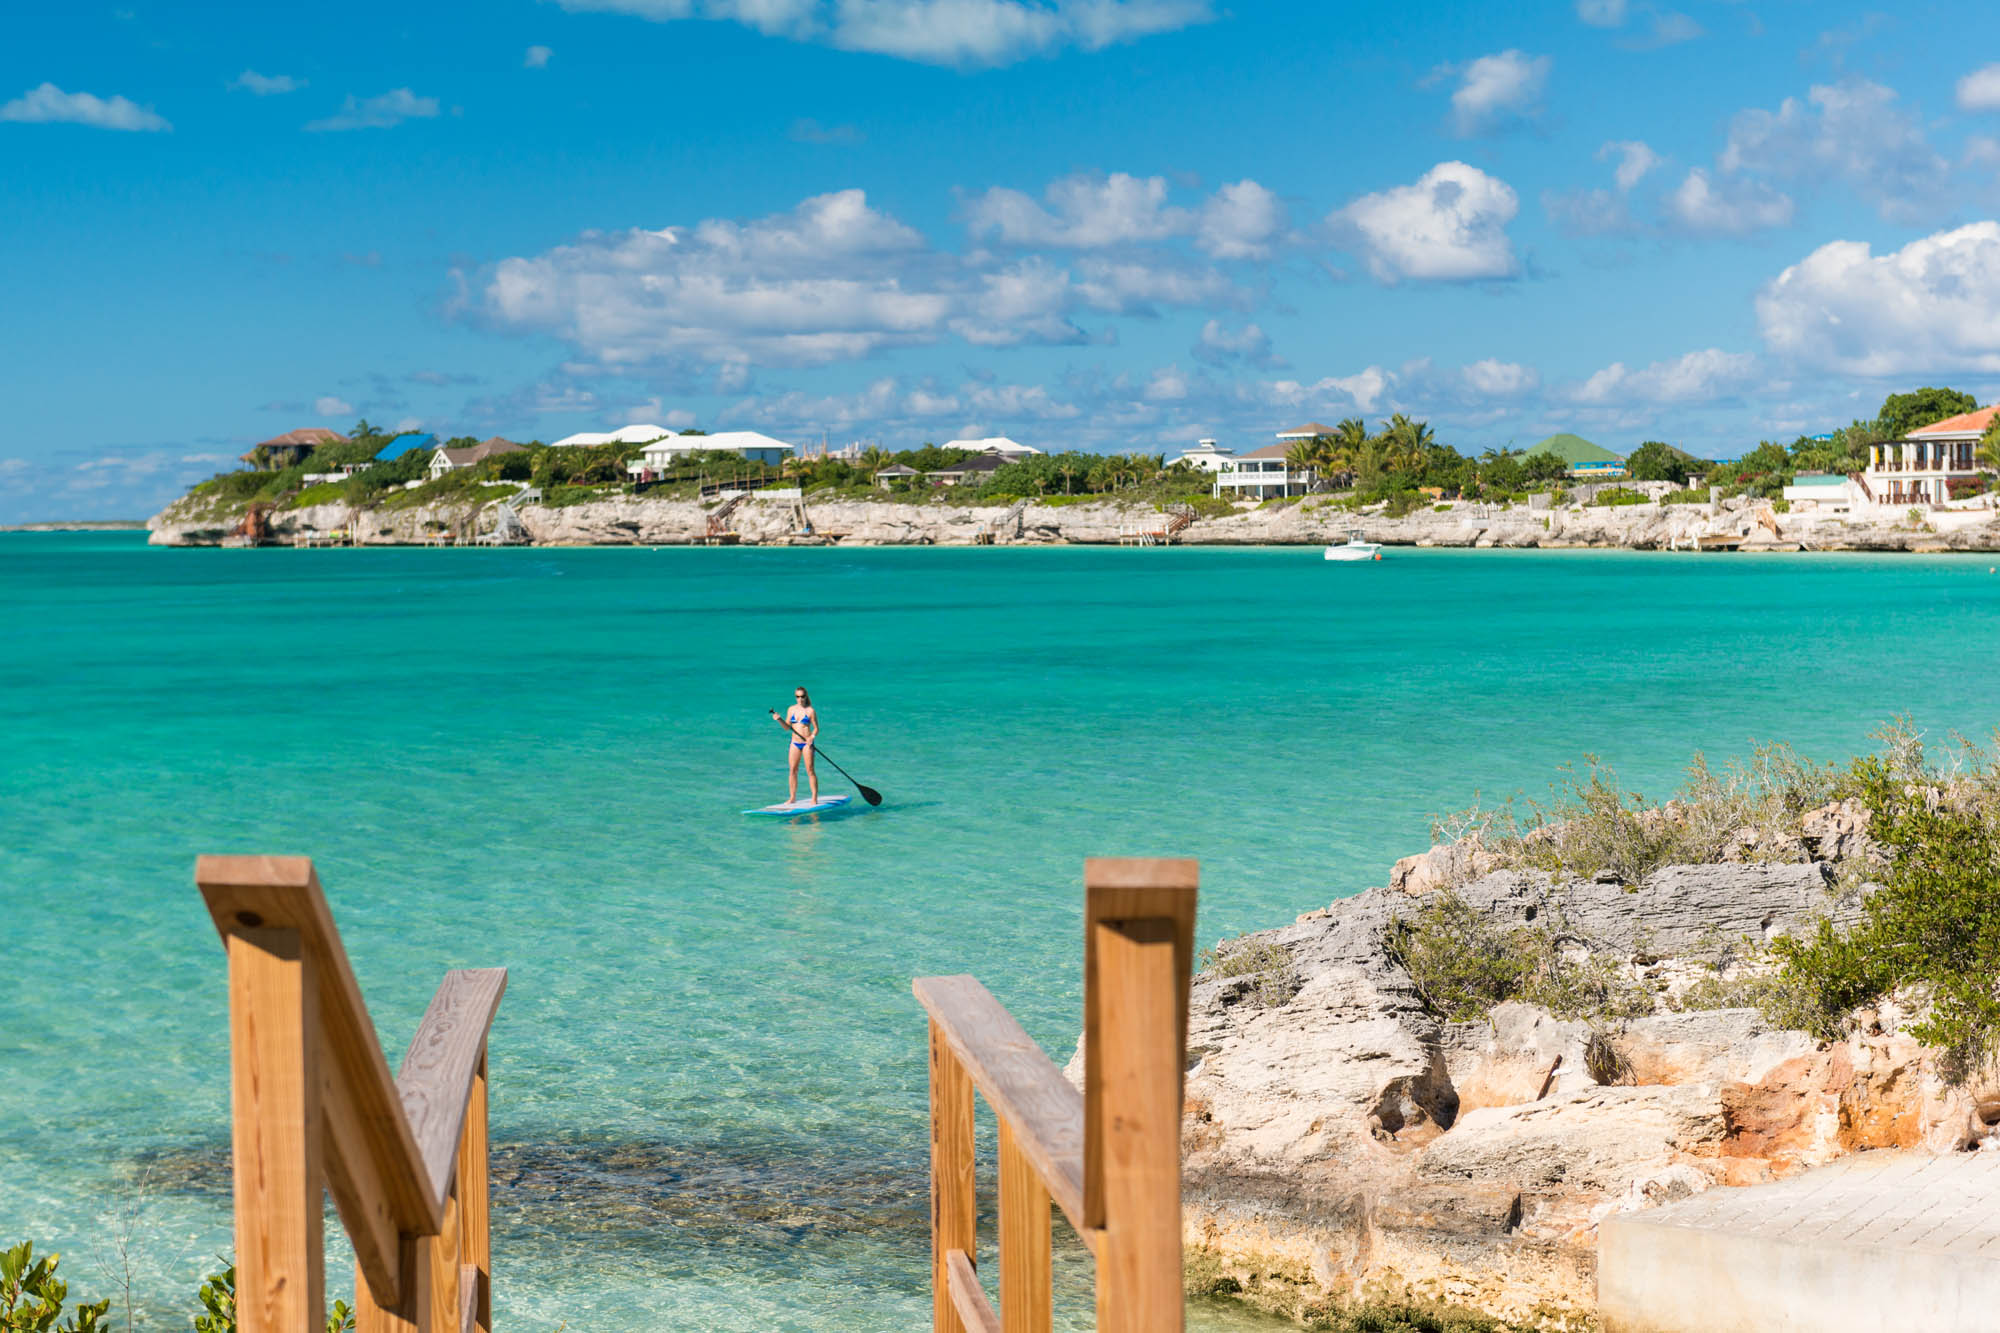 Miami Vice Two, Sapodilla Bay, Providenciales (Provo), Turks and Caicos Islands is only steps away from the crystal clear sea.